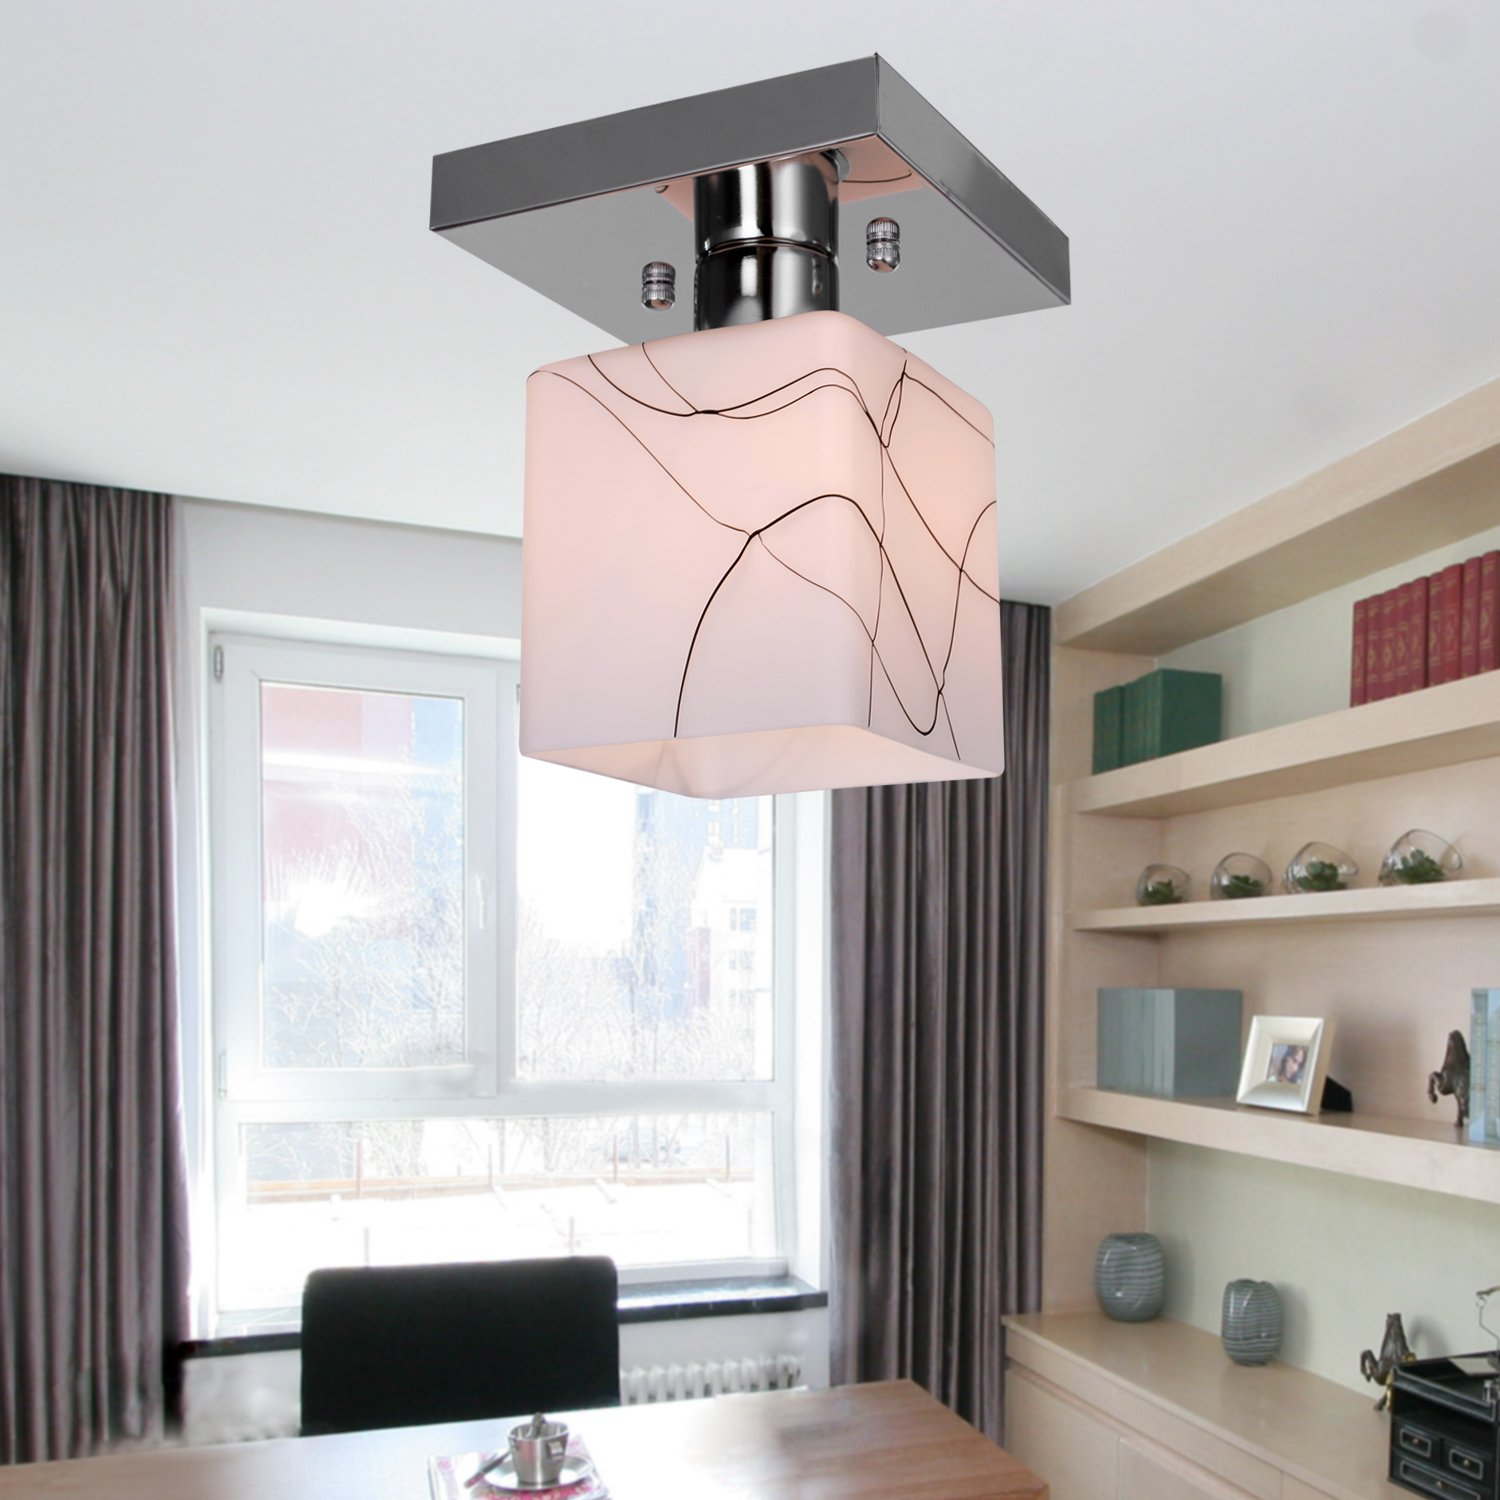 LightInTheBox?Stainless Steel Ceiling Light in Cube Shape, Modern ...